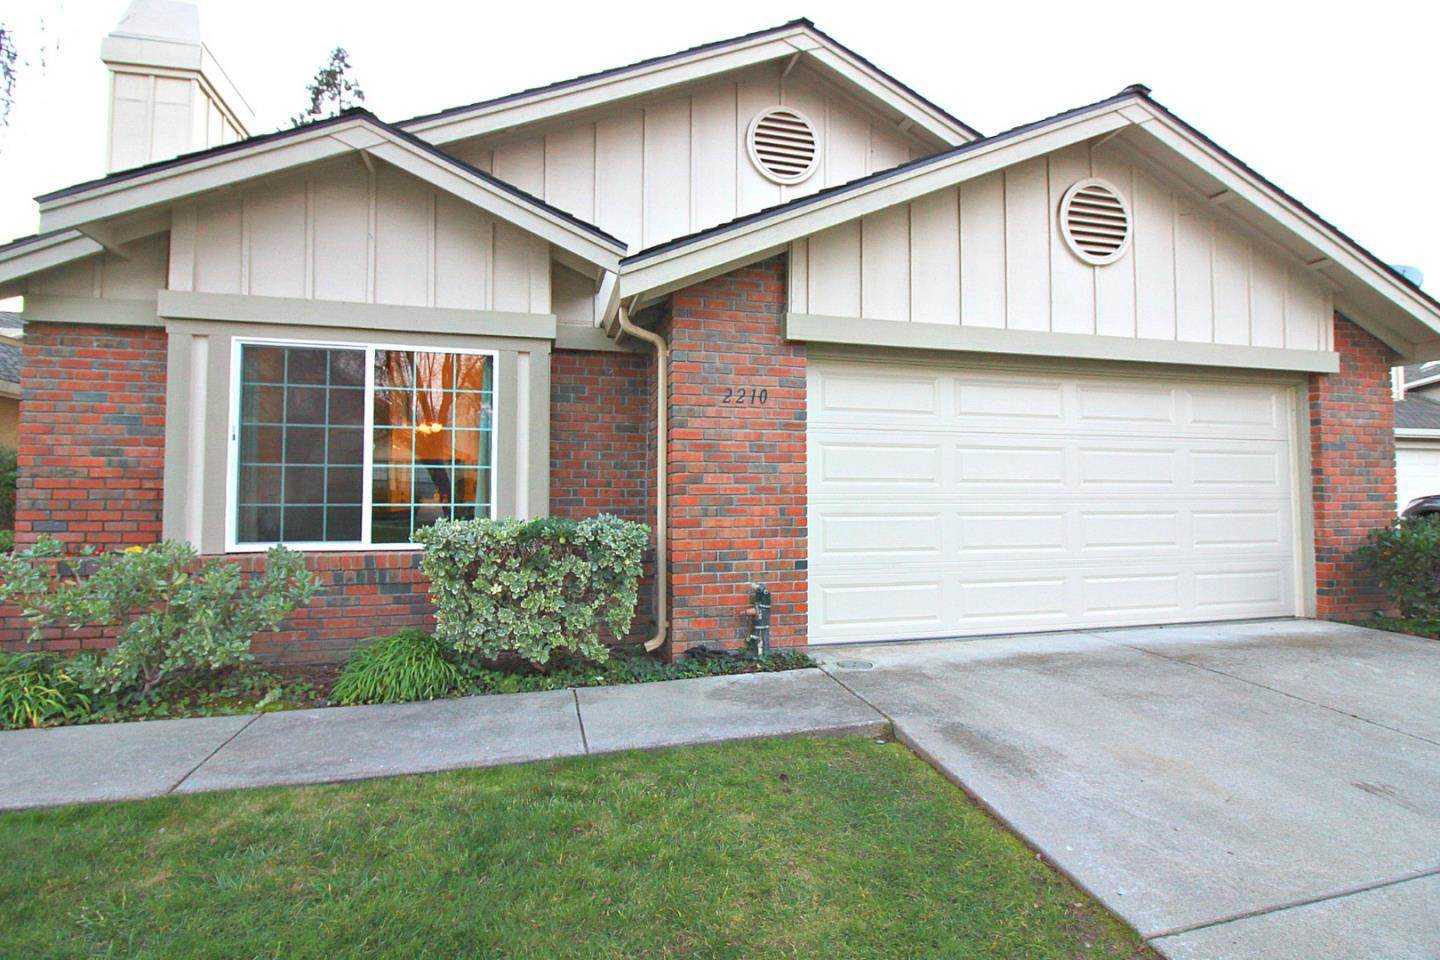 Photo of 2210 Bayo Claros Circle  Morgan Hill  CA